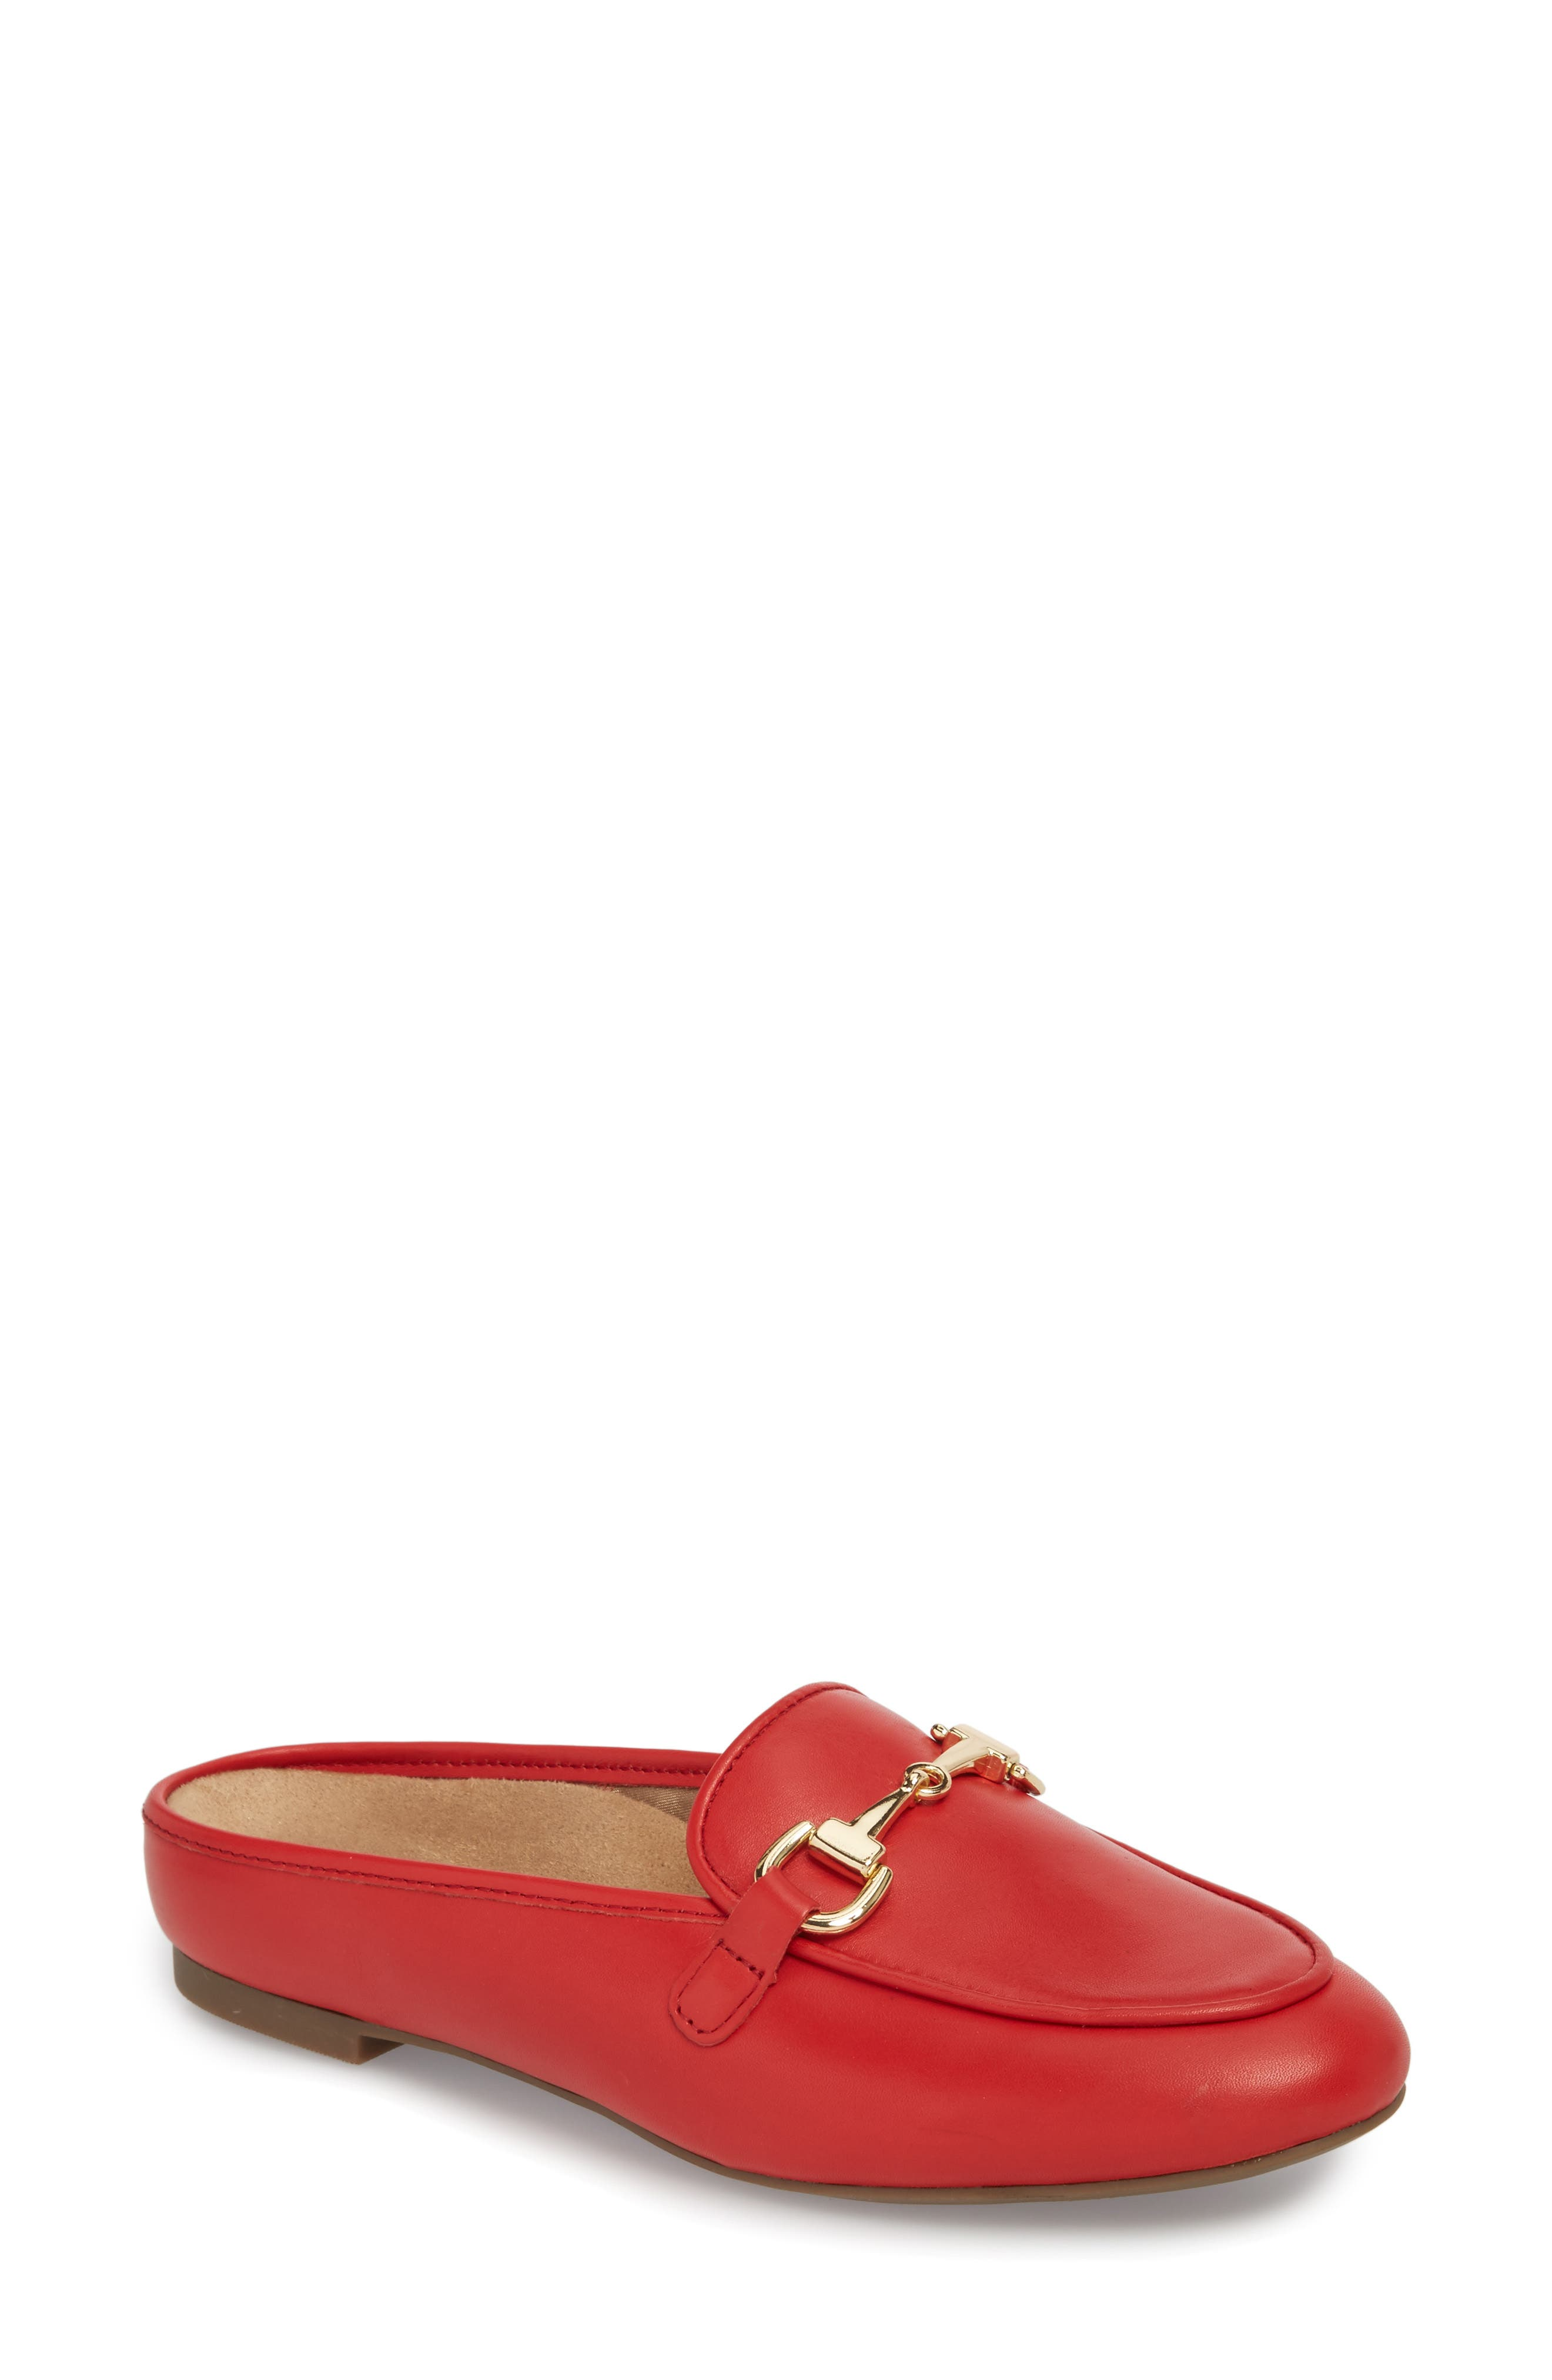 Adeline Mule,                         Main,                         color, Red Leather